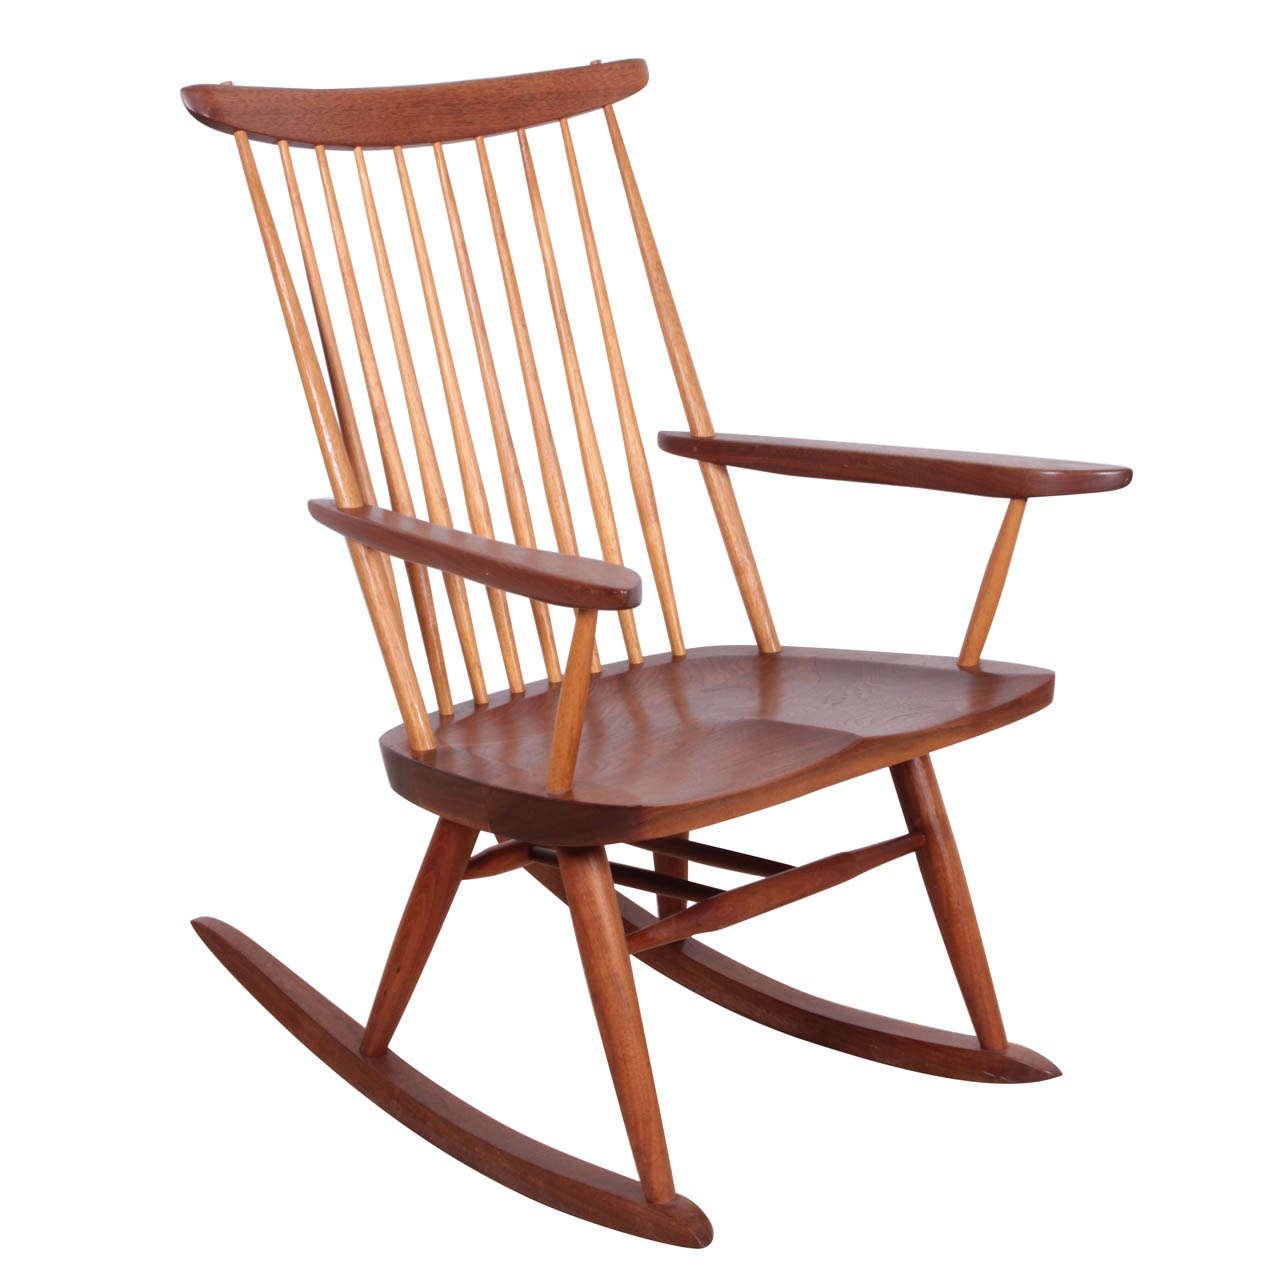 George Nakashima Chairs george nakashima rocker for sale at 1stdibs